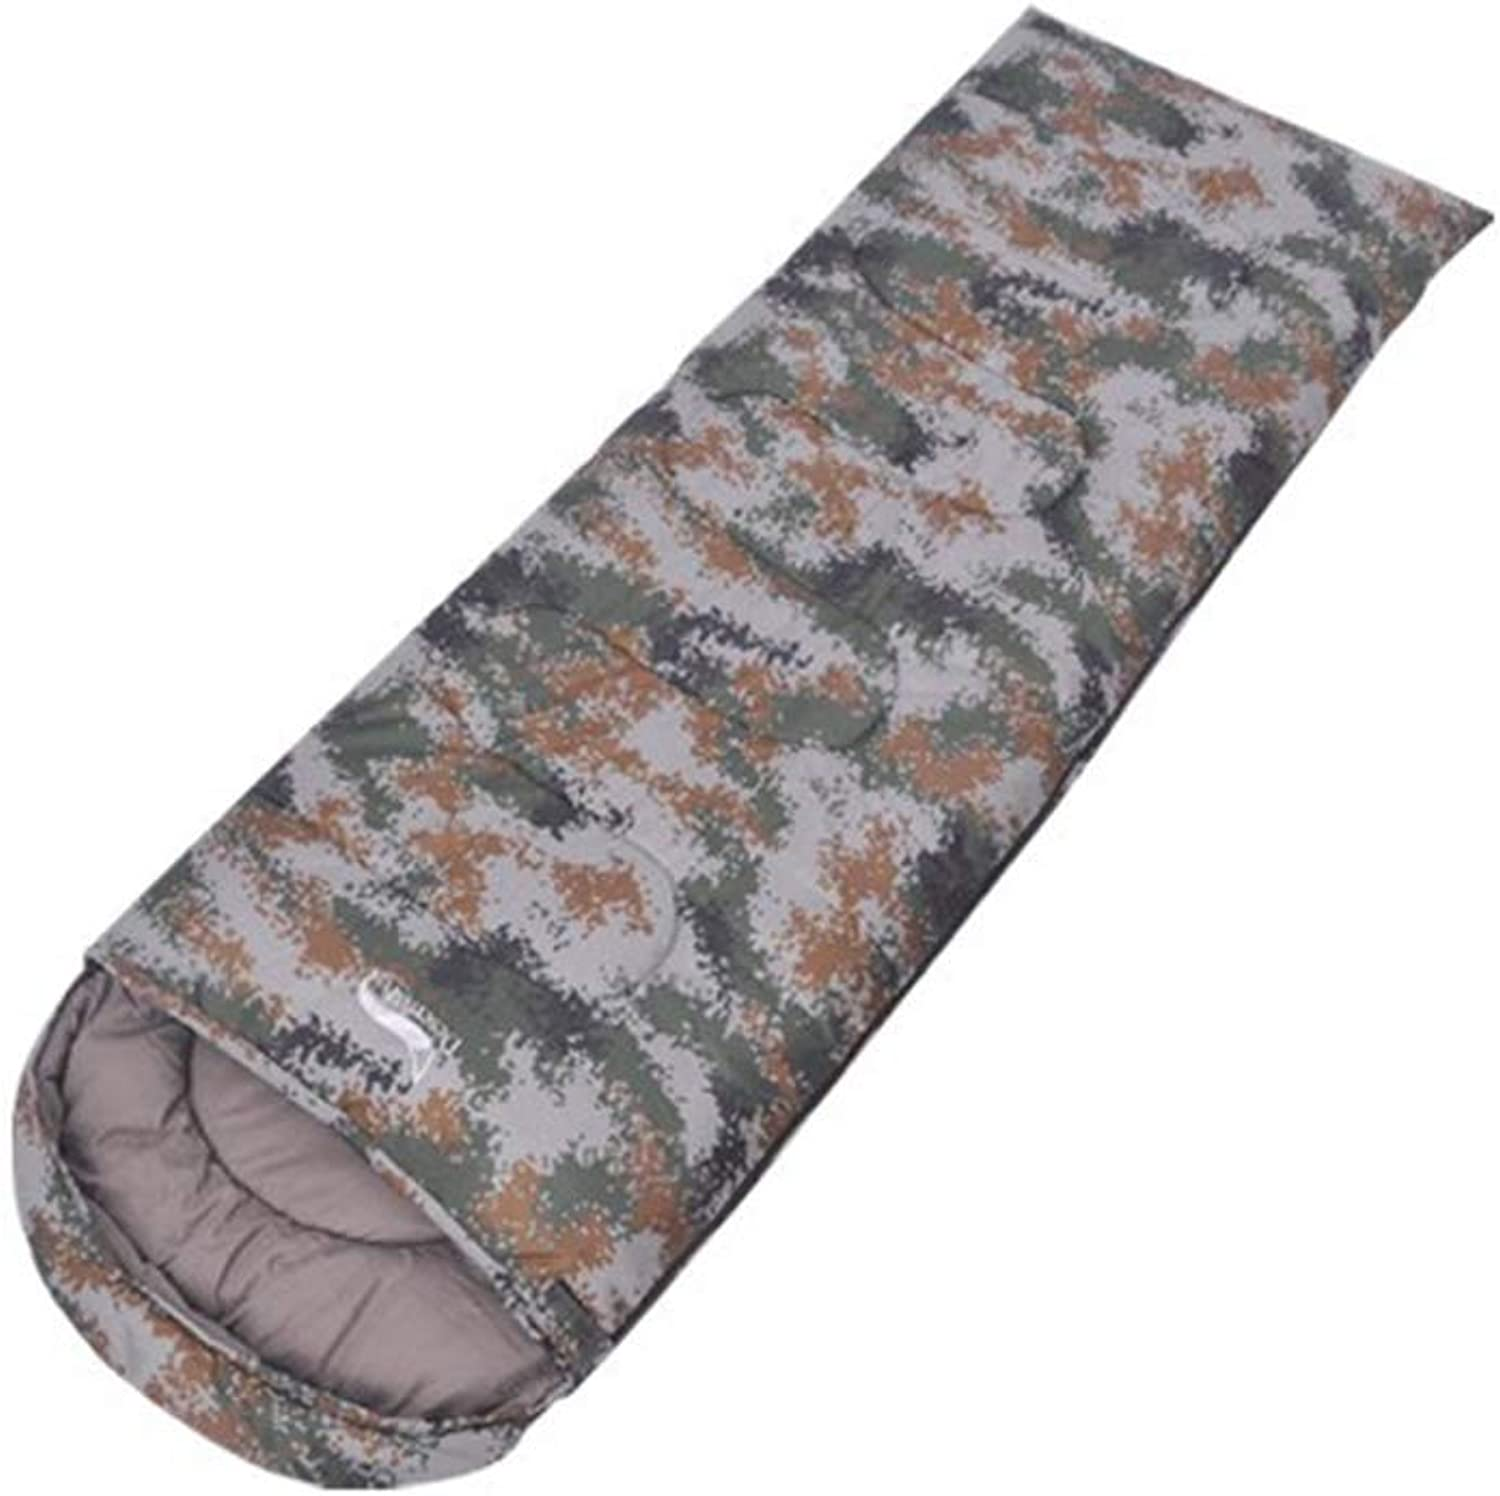 Backpacking Camping Sleeping Bag Waterproof for Adults Kids Lightweight with Compression Sack,Camouflage